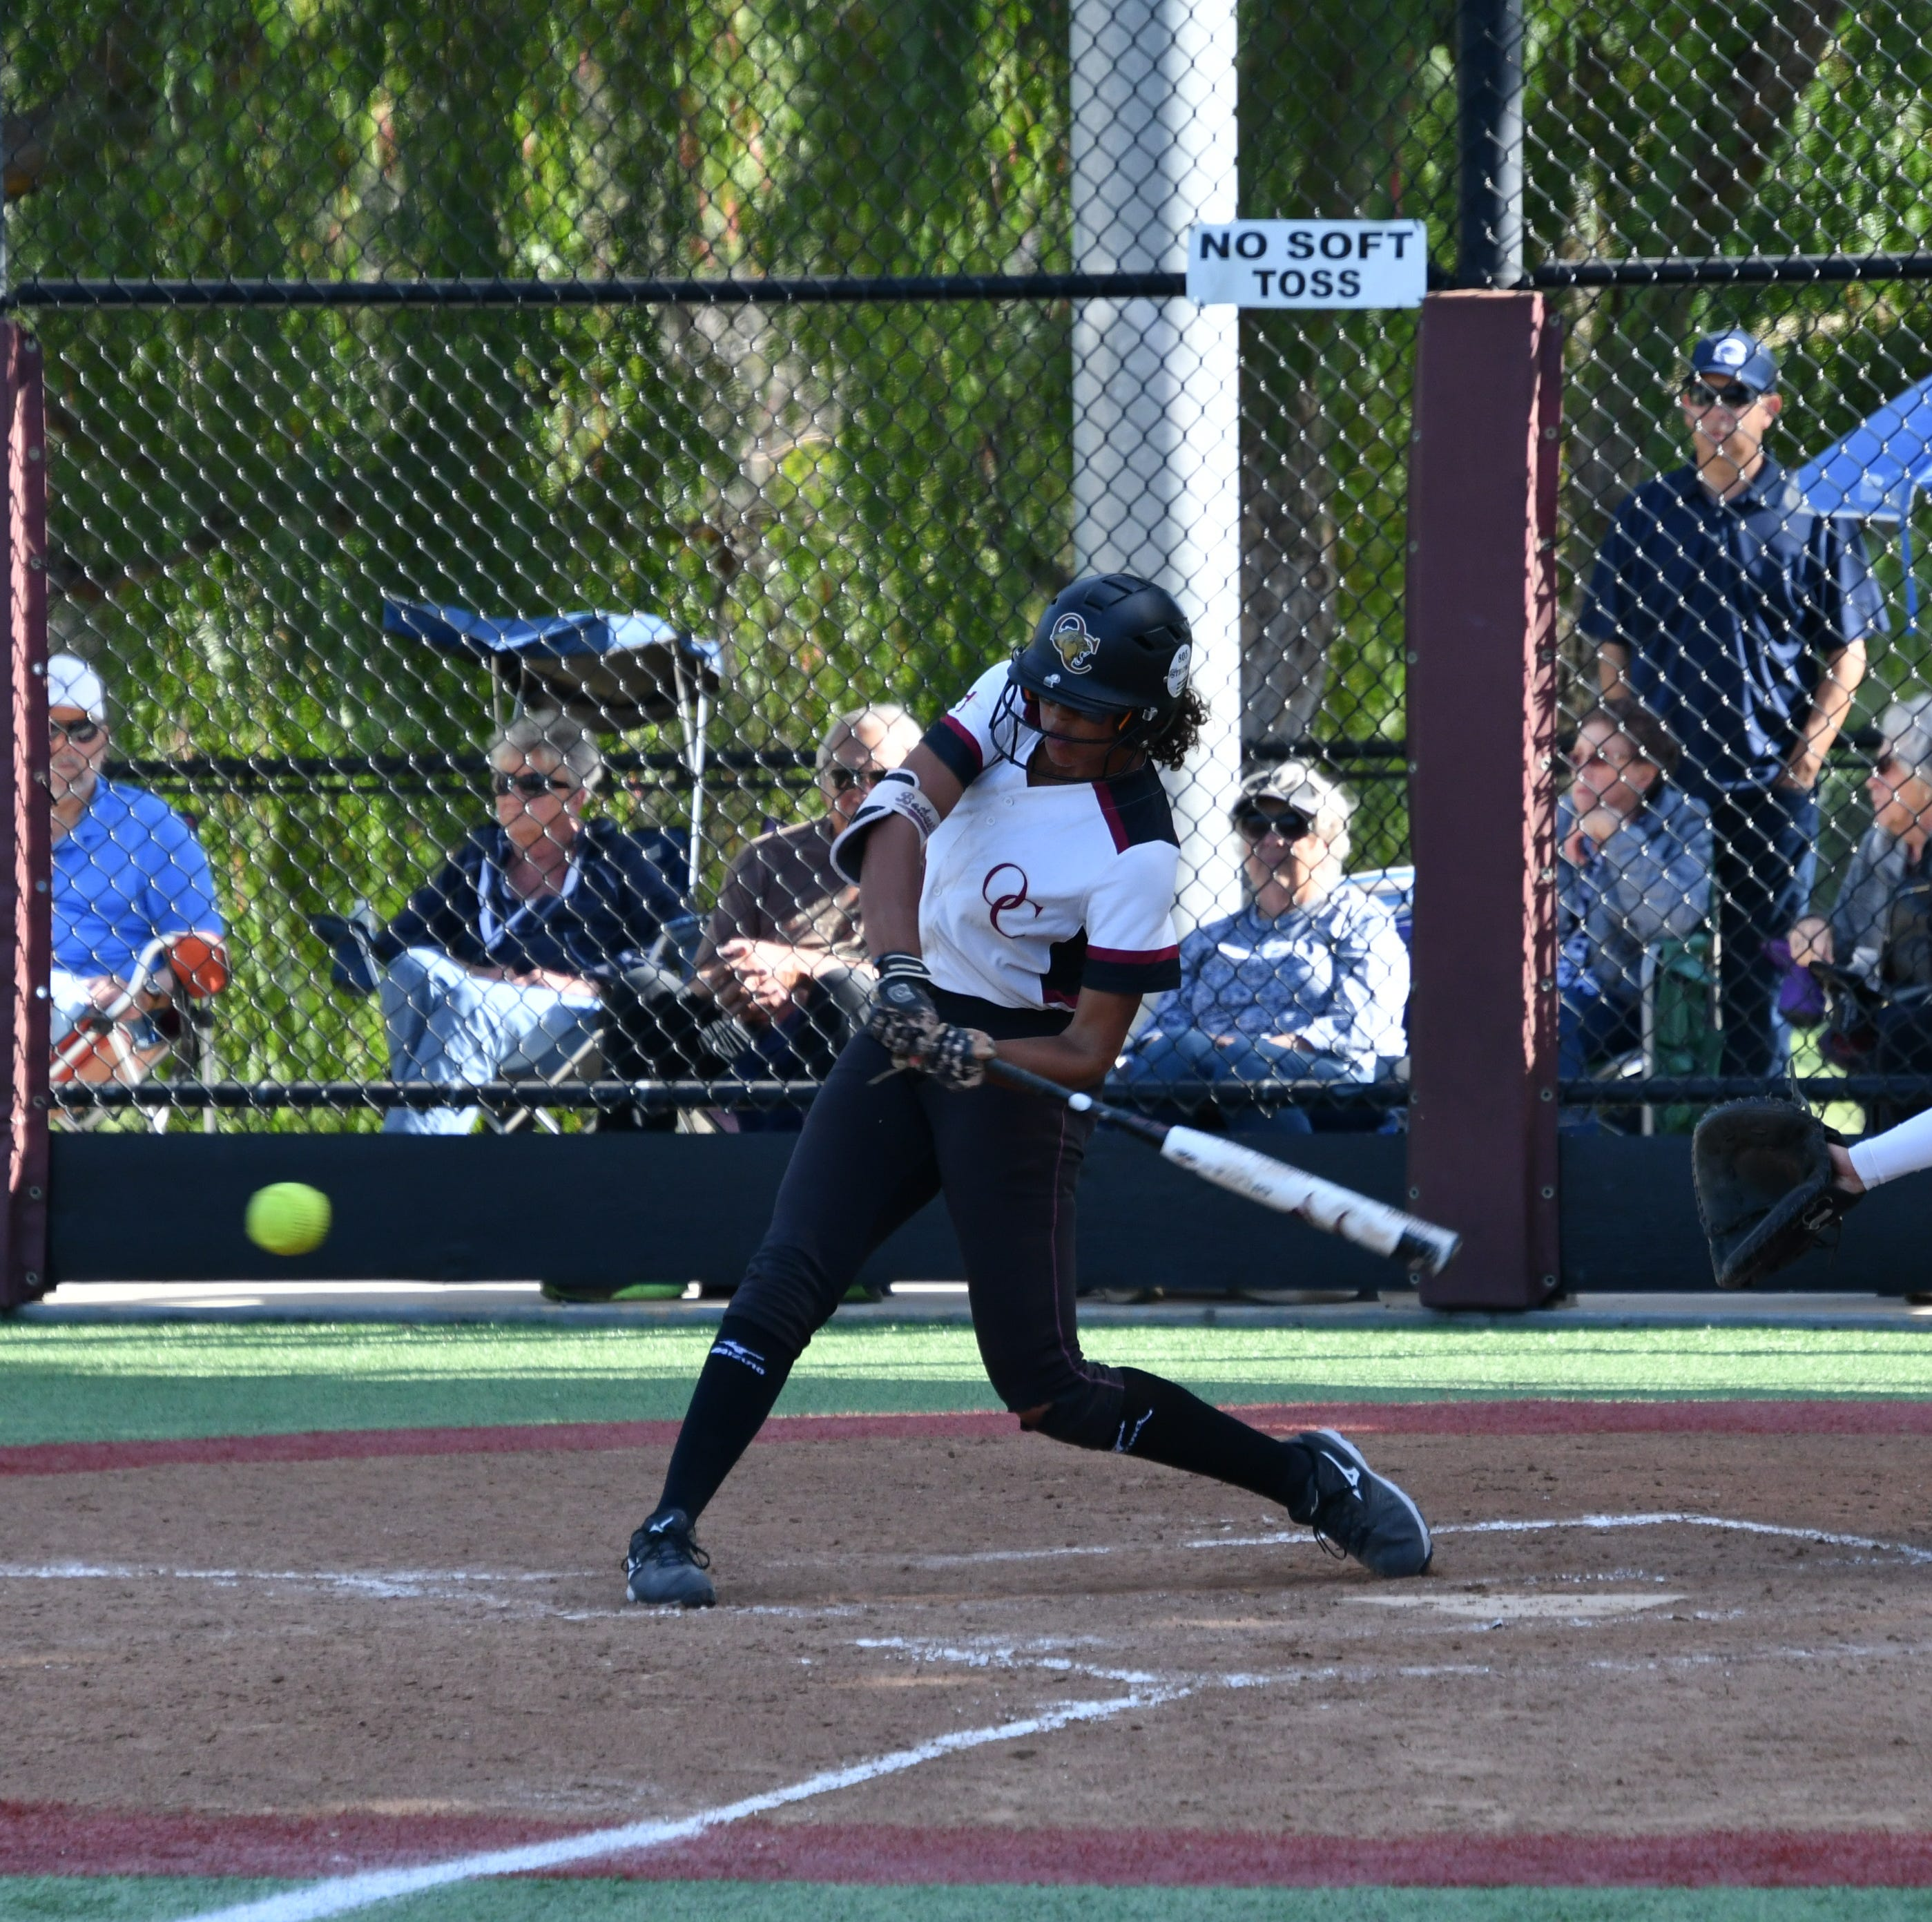 Brady powers Oaks Christian past Camarillo in Division I softball playoff opener